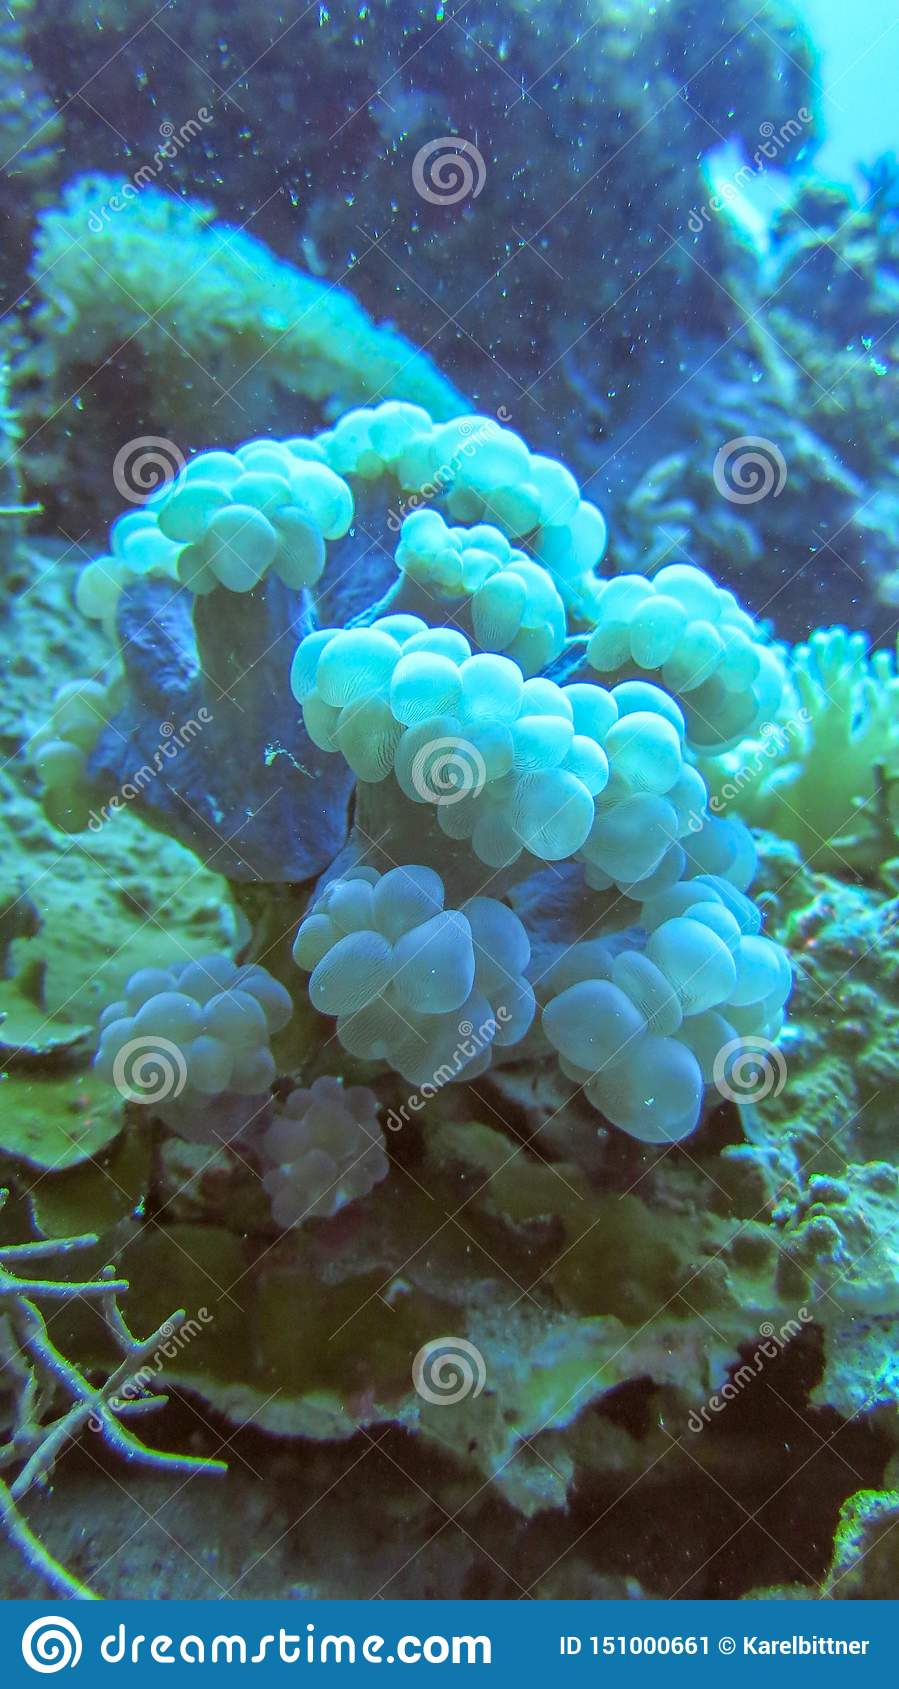 Soft coral of slightly blue color. Sea anemone. Dense overgrown coral bedrock. Colorful underwater life.